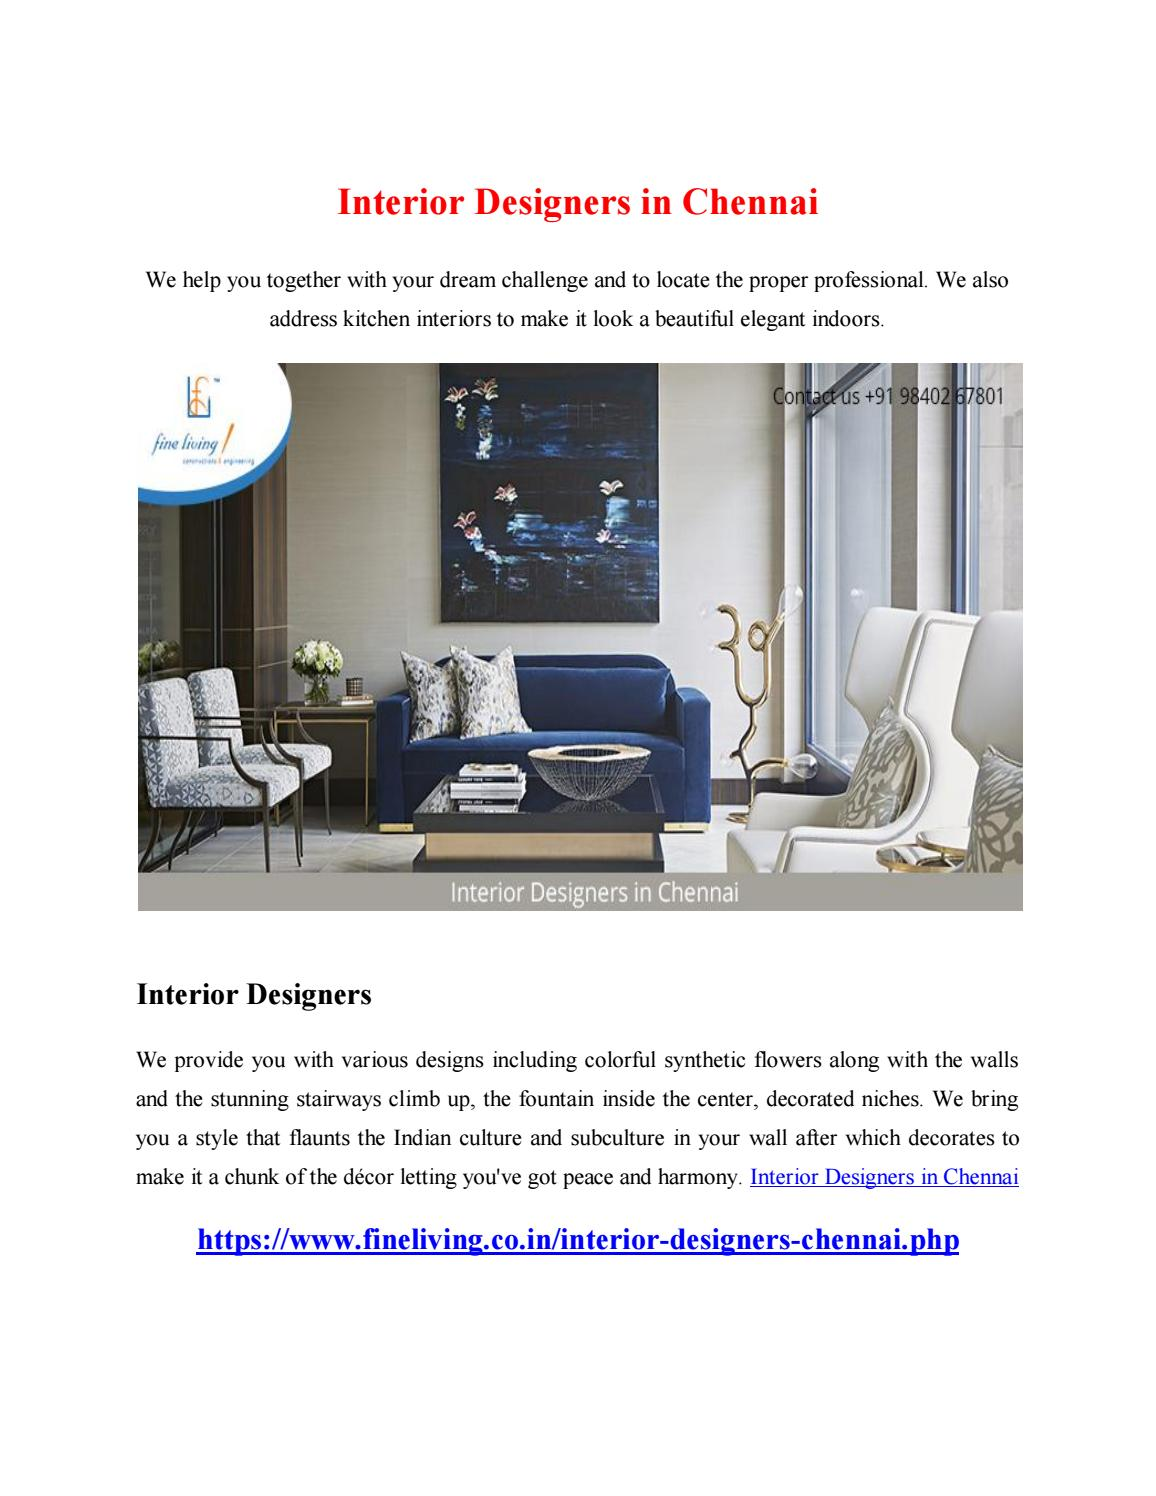 Interior Designers in Chennai by madhuram34 - issuu